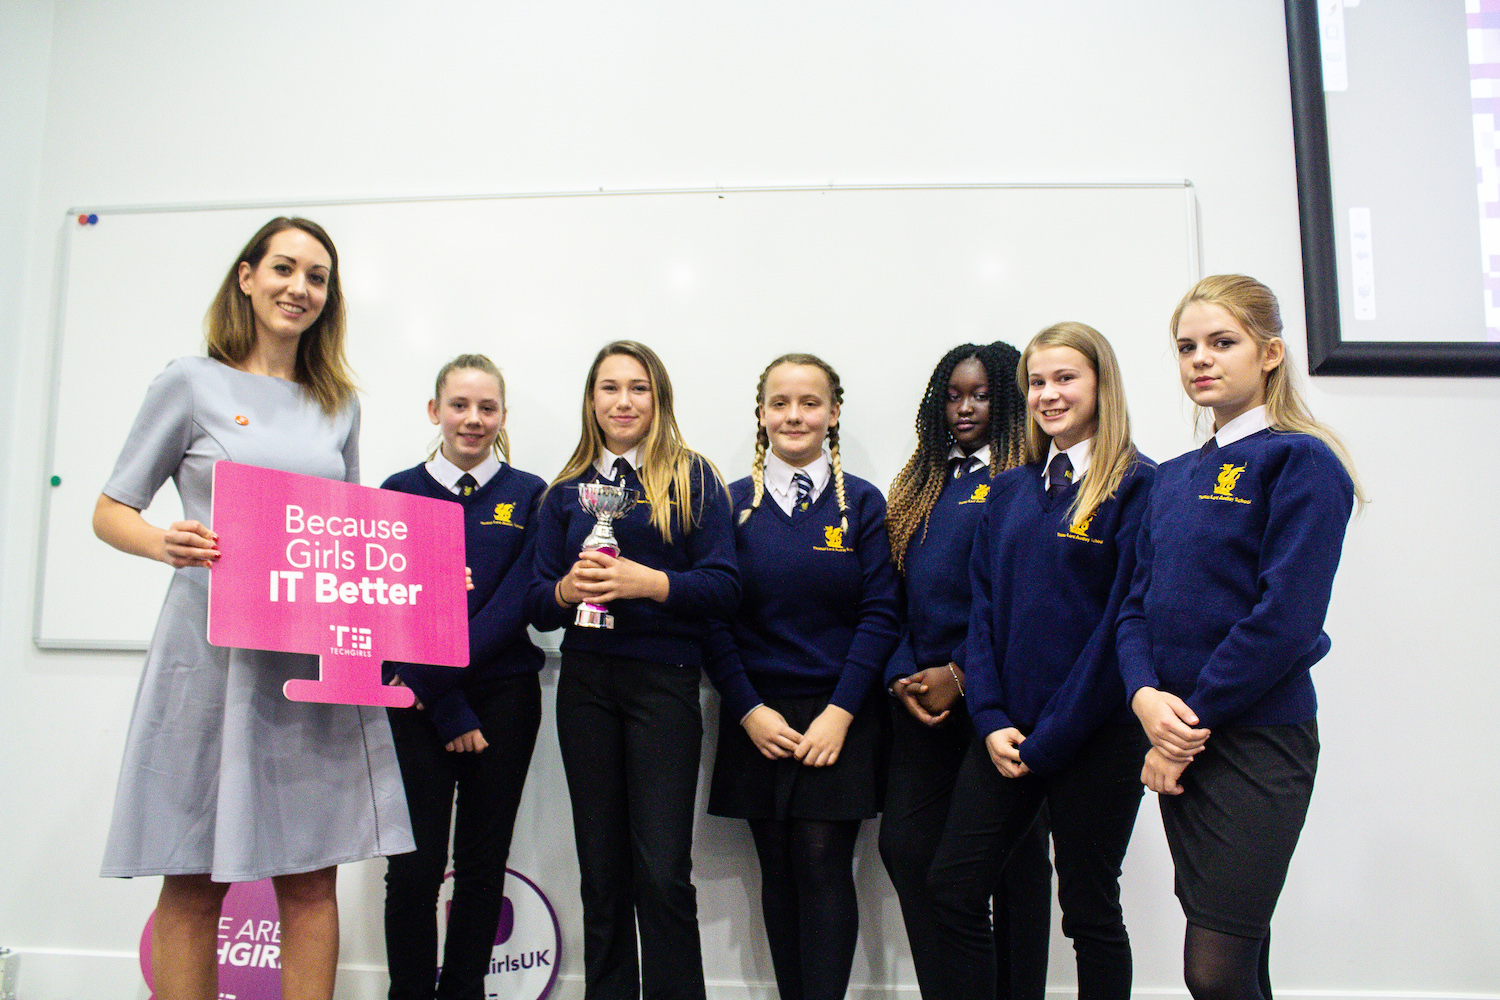 Professional Photography Six Female Students In Blue Sweatshirts Holding Silver And Pink Trophy At Event With Woman In Grey Dress